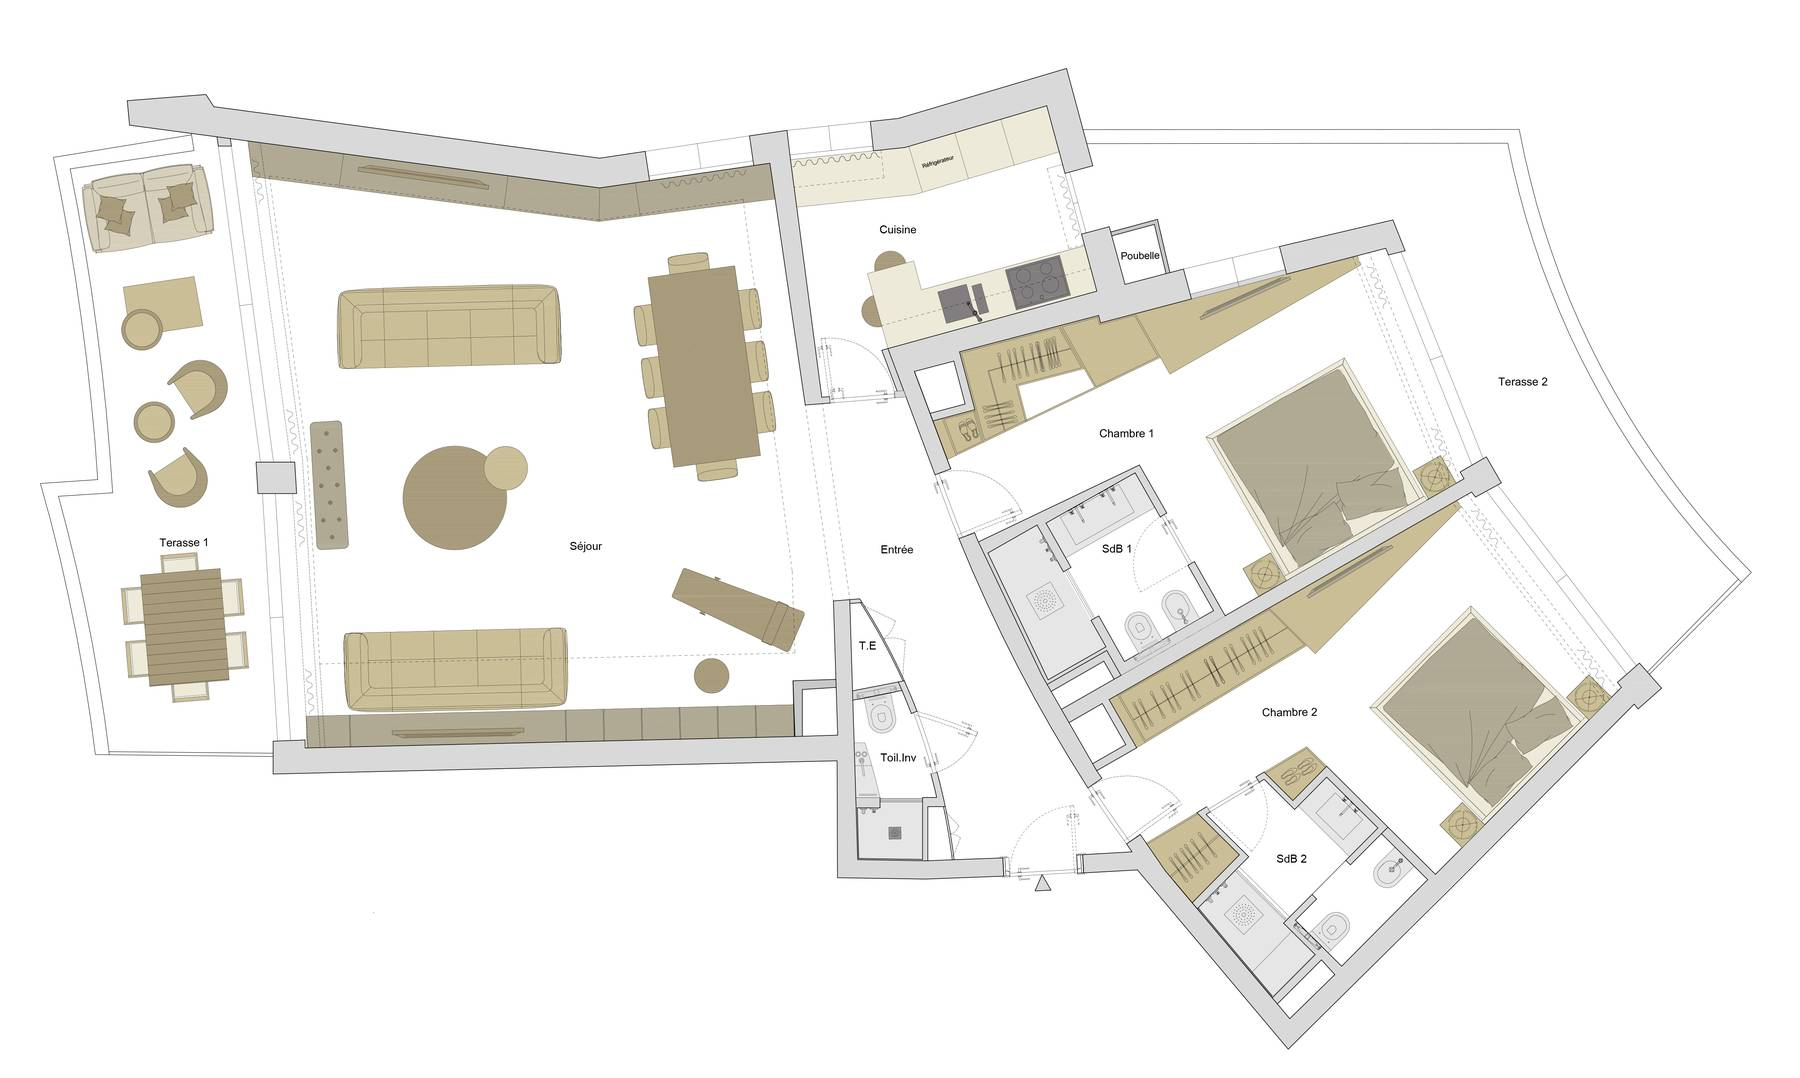 PLAN DE L'APPARTMENT - SOLUTION 2